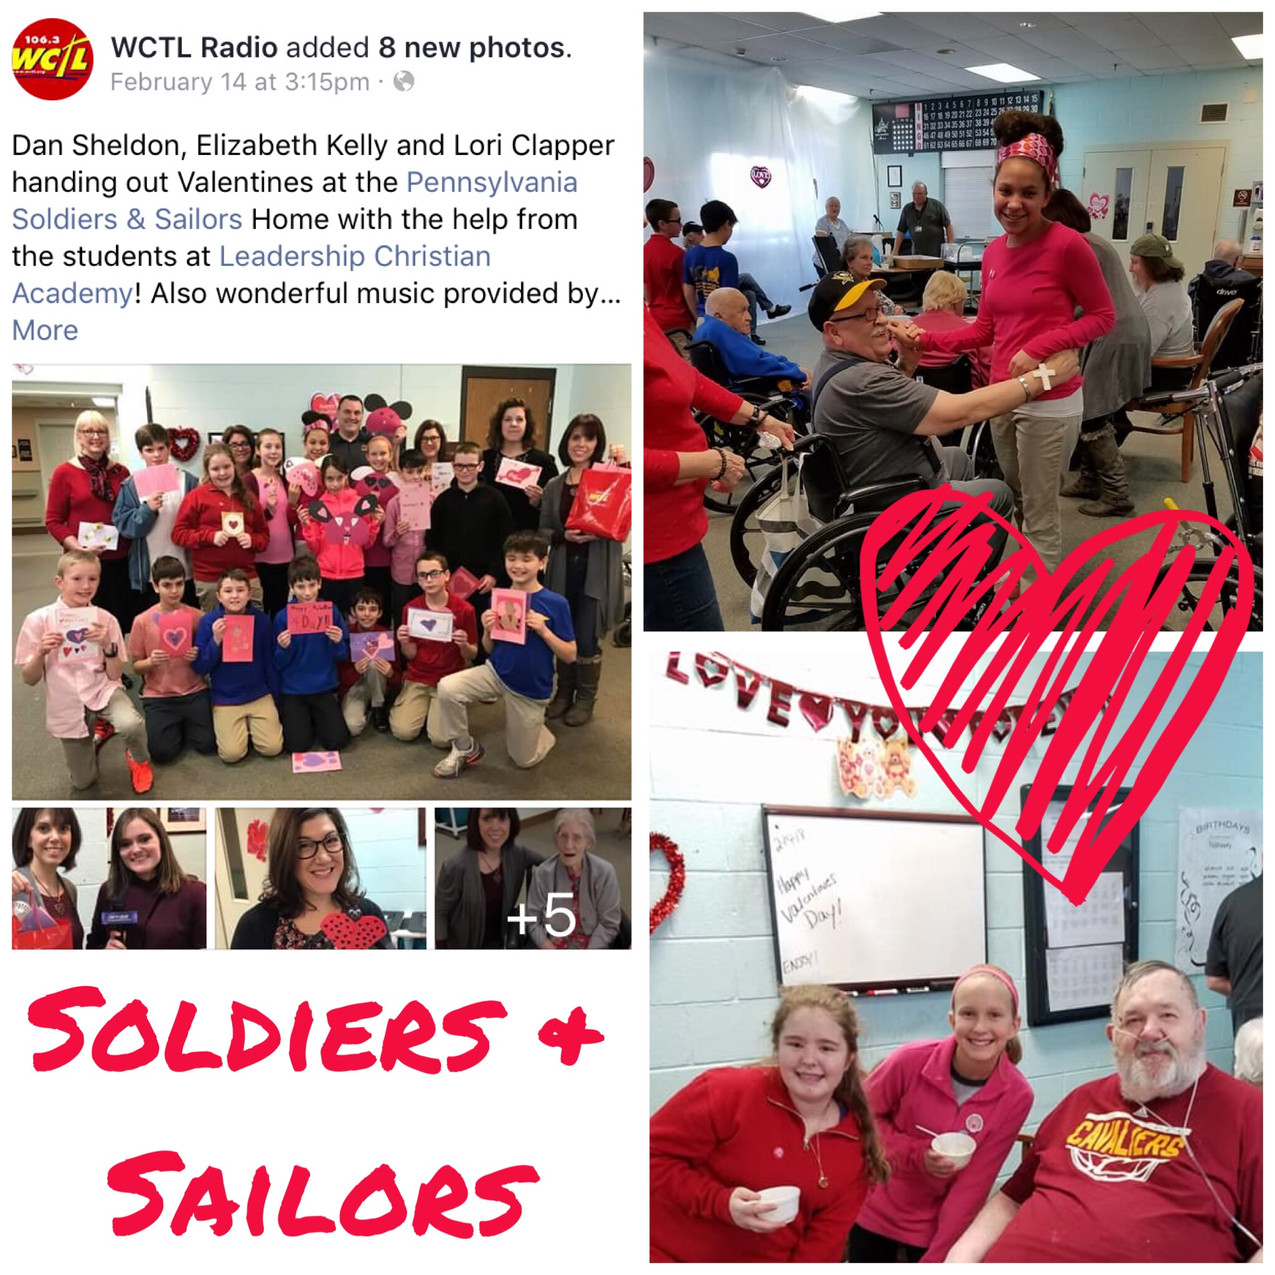 Feb 14 Soldiers and Sailors